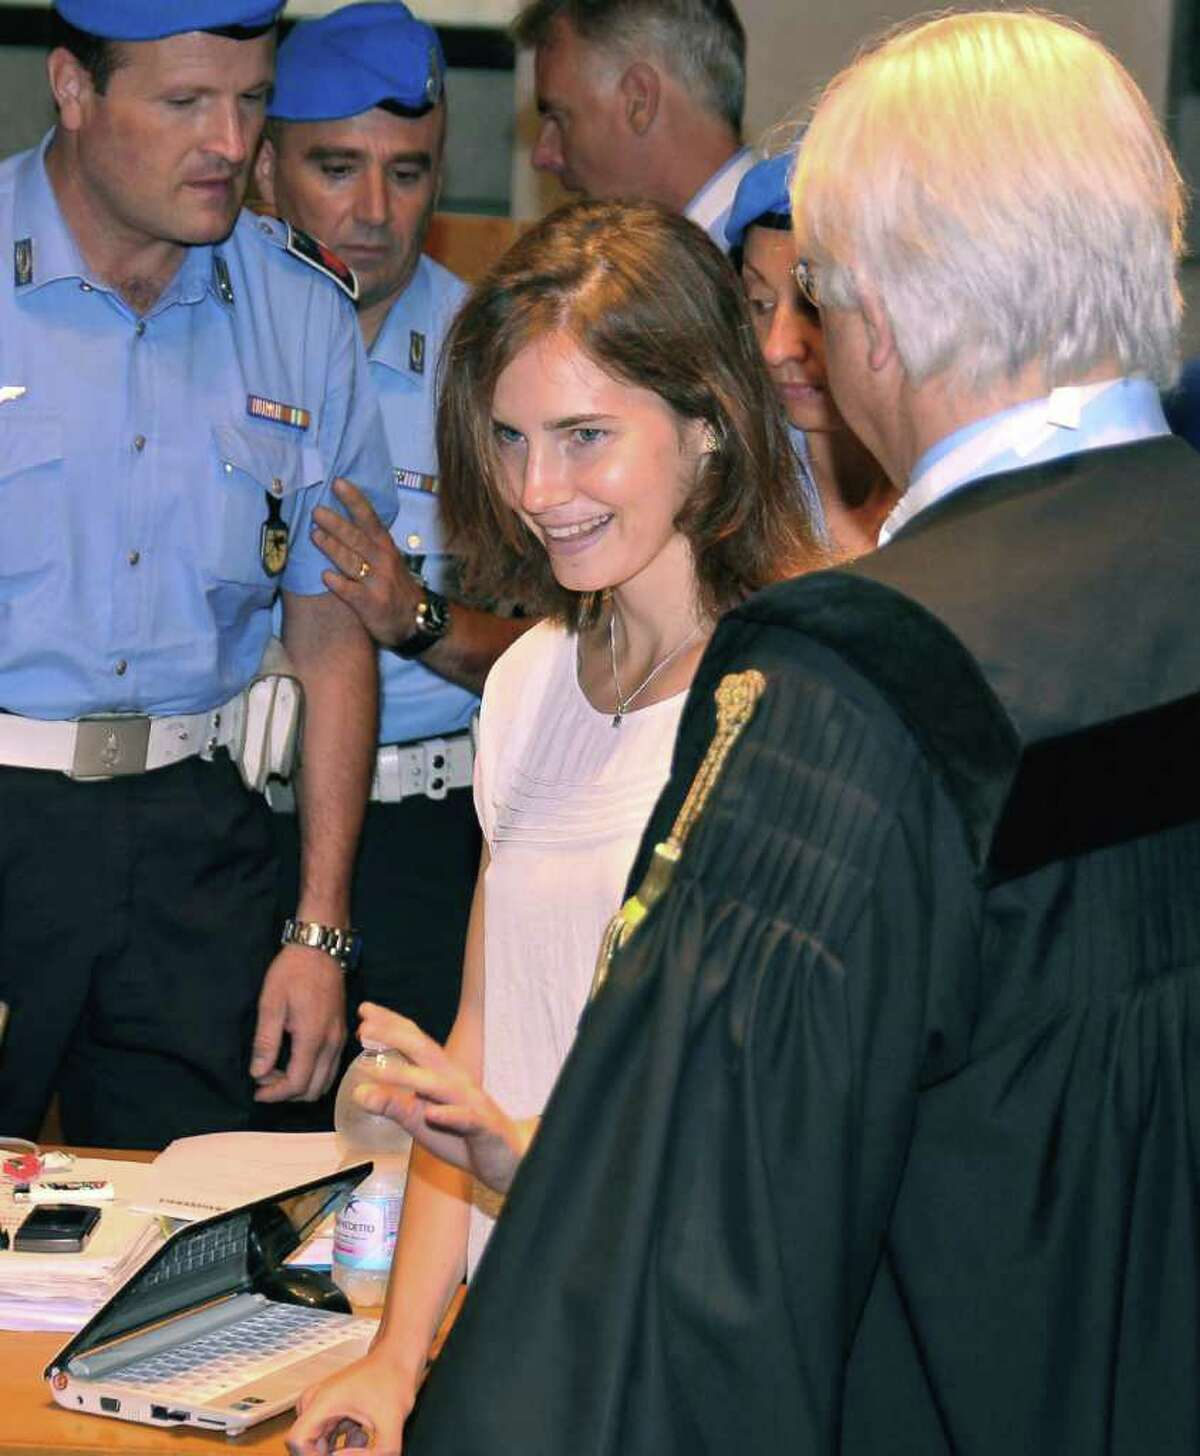 American student Amanda Knox arrives for the hearing Monday. (AP Photo/Stefano Medici)